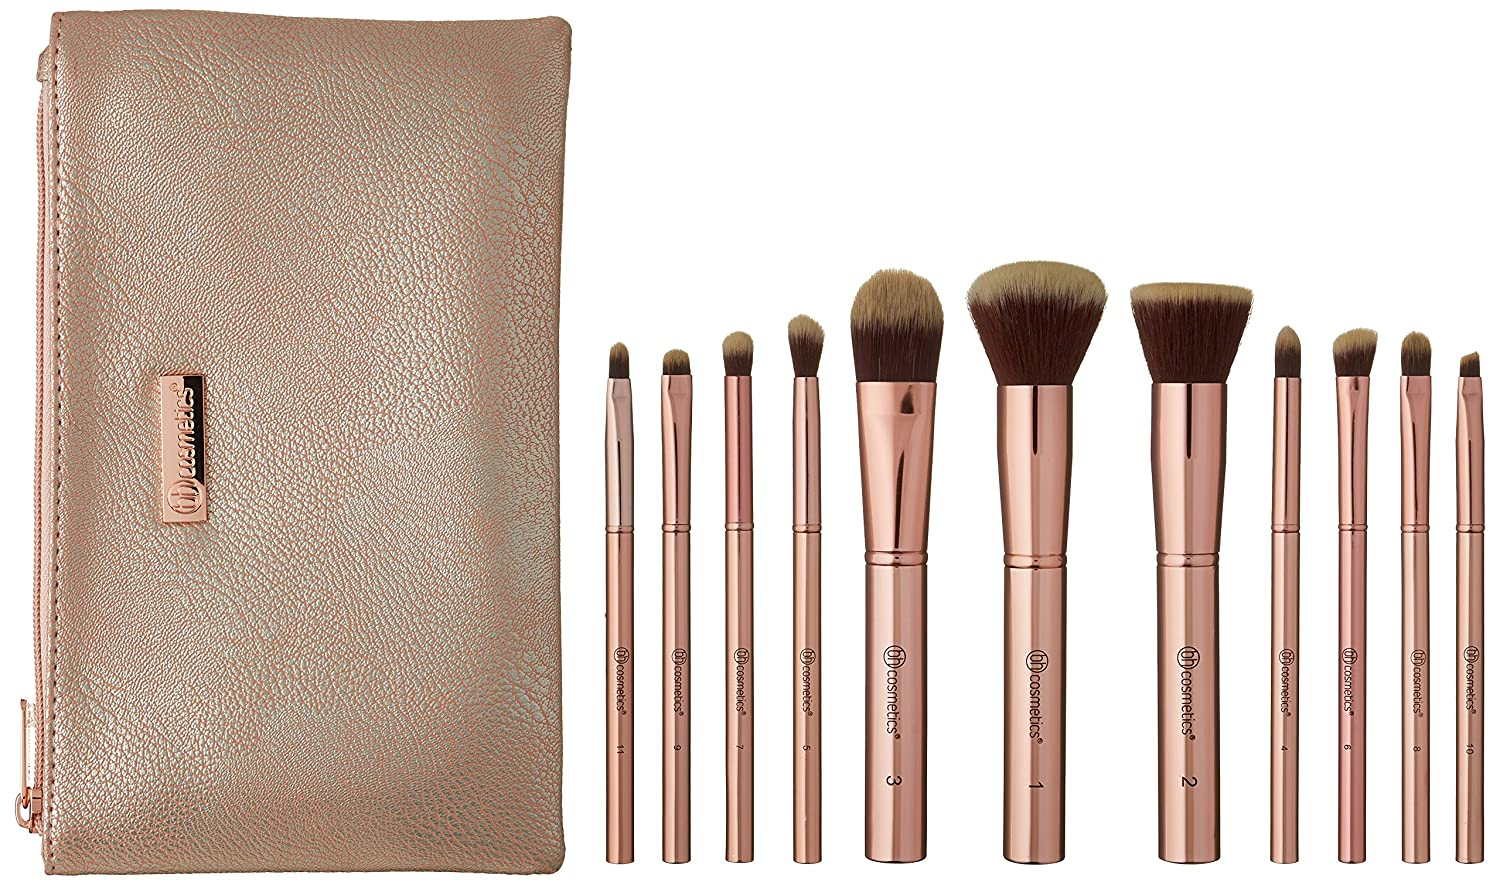 Bh Signature Rose Gold 13 Teiliges Pinselset Bh Cosmetics